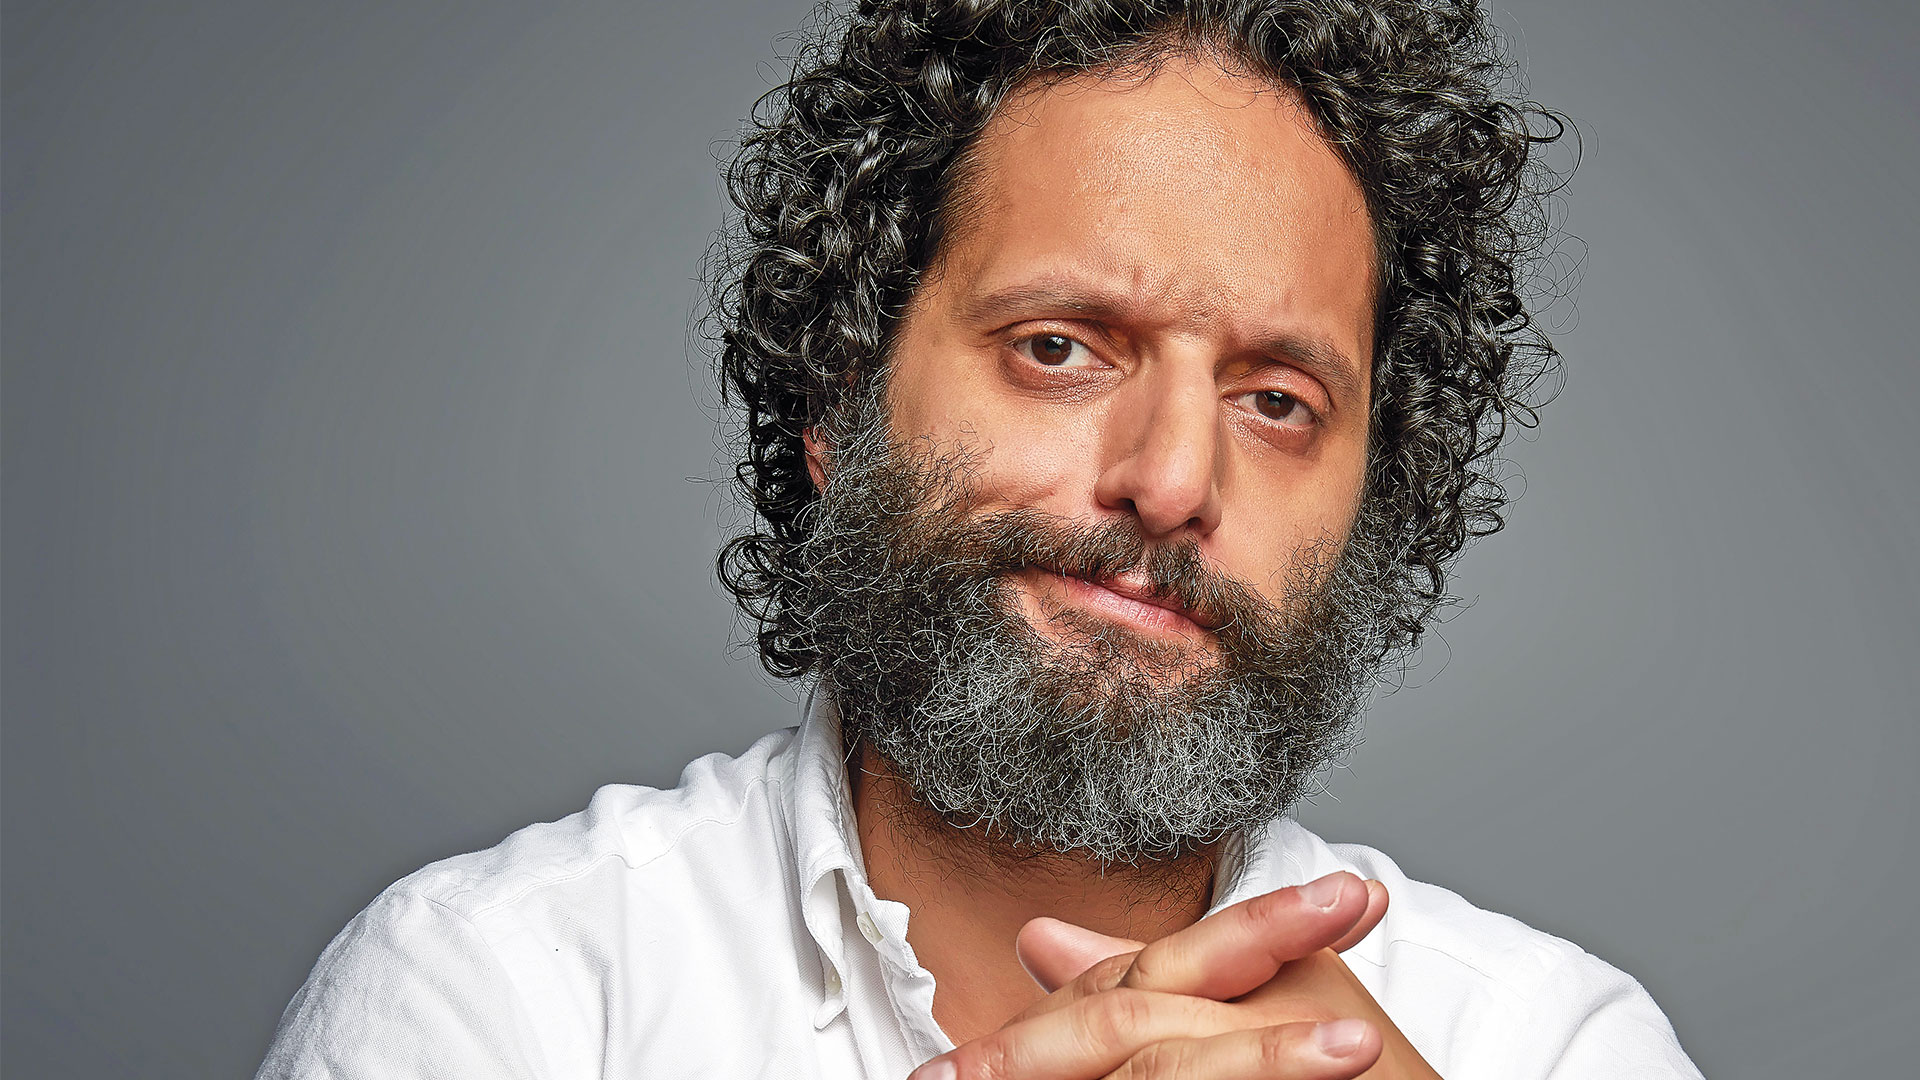 Seal of Approval: 'John Wick 3' Star Jason Mantzoukas Shares His Favorite Show, Gear, and More